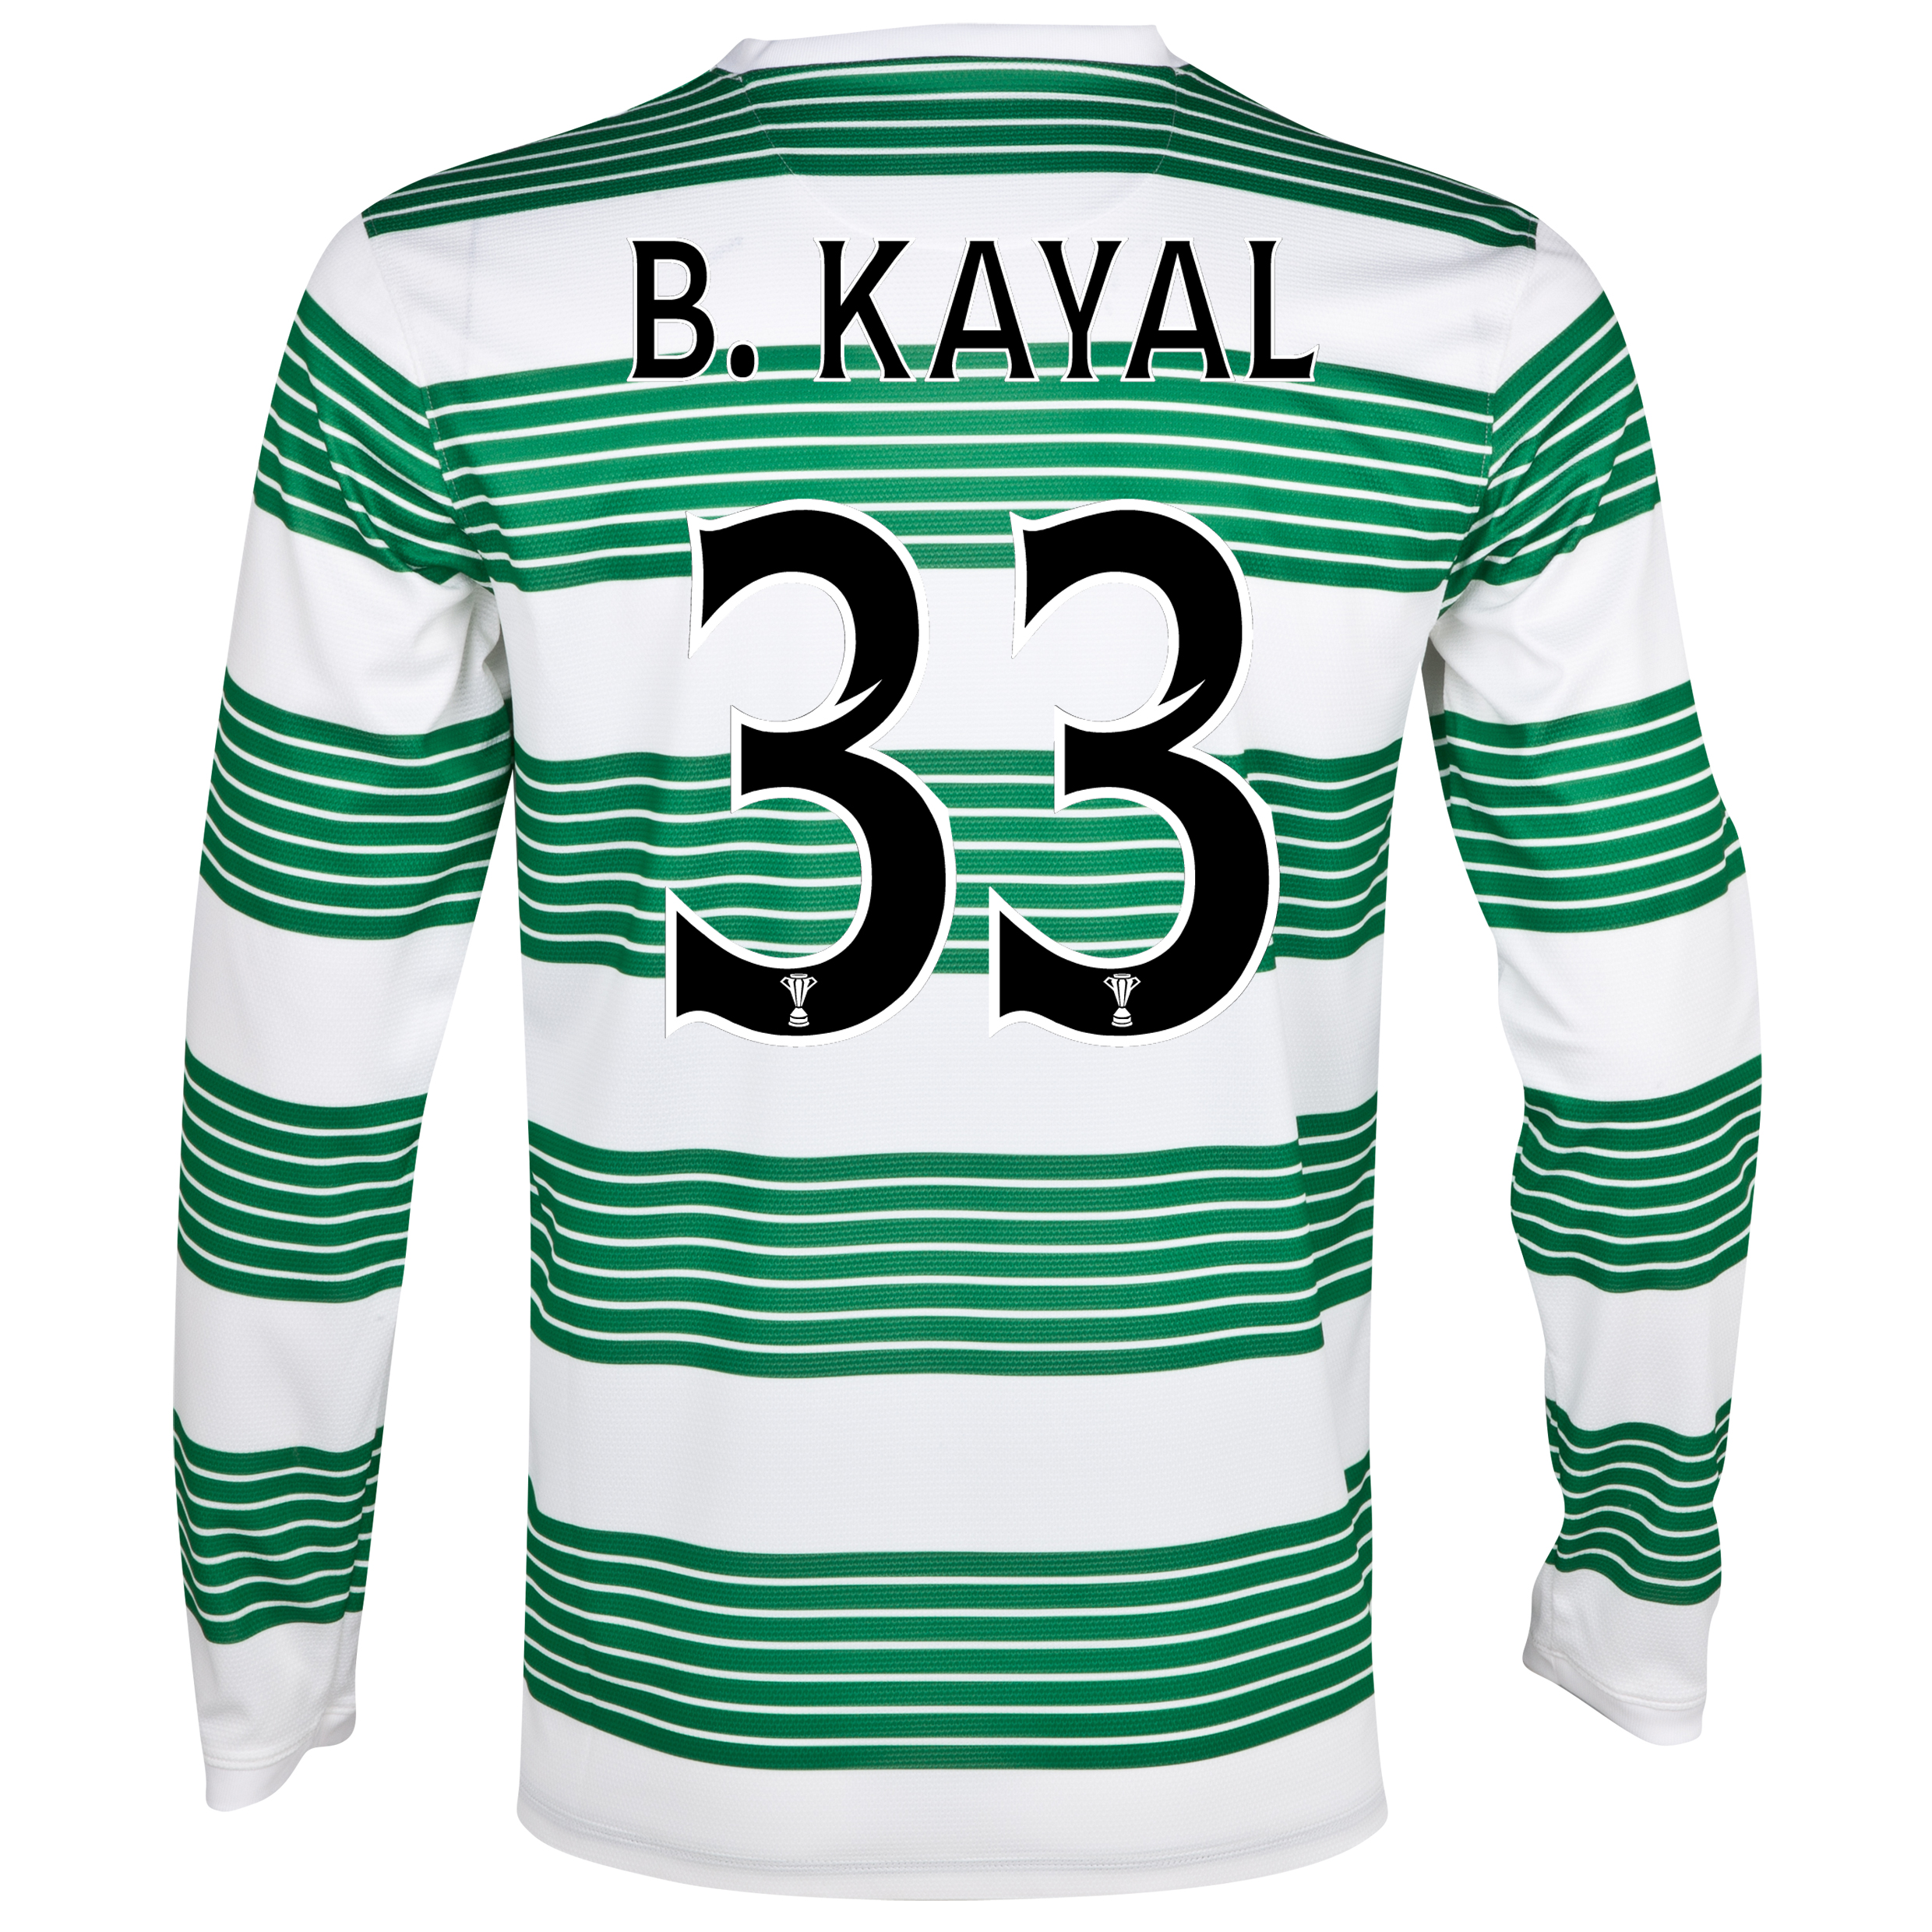 Celtic Home Shirt 2013/14 - L/S- Unsponsored with B.Kayal 33 printing